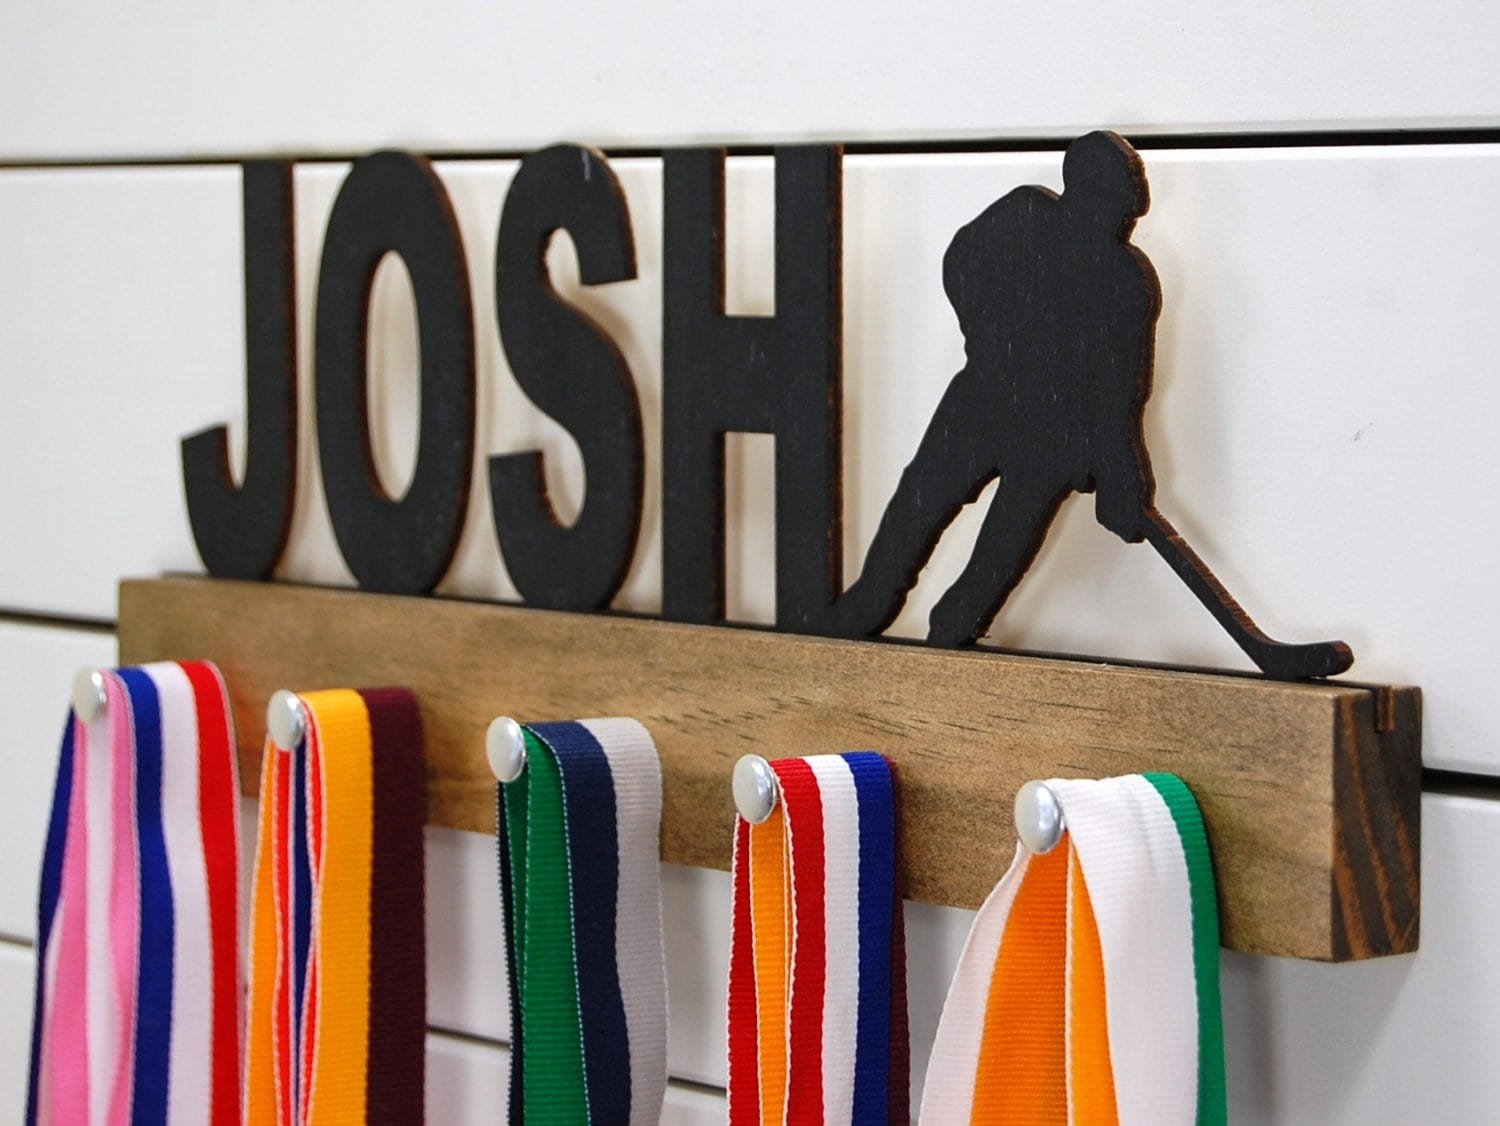 Boys hockey bedroom ideas - Personalized Hockey Medal Holder 12 Or 20 Inch